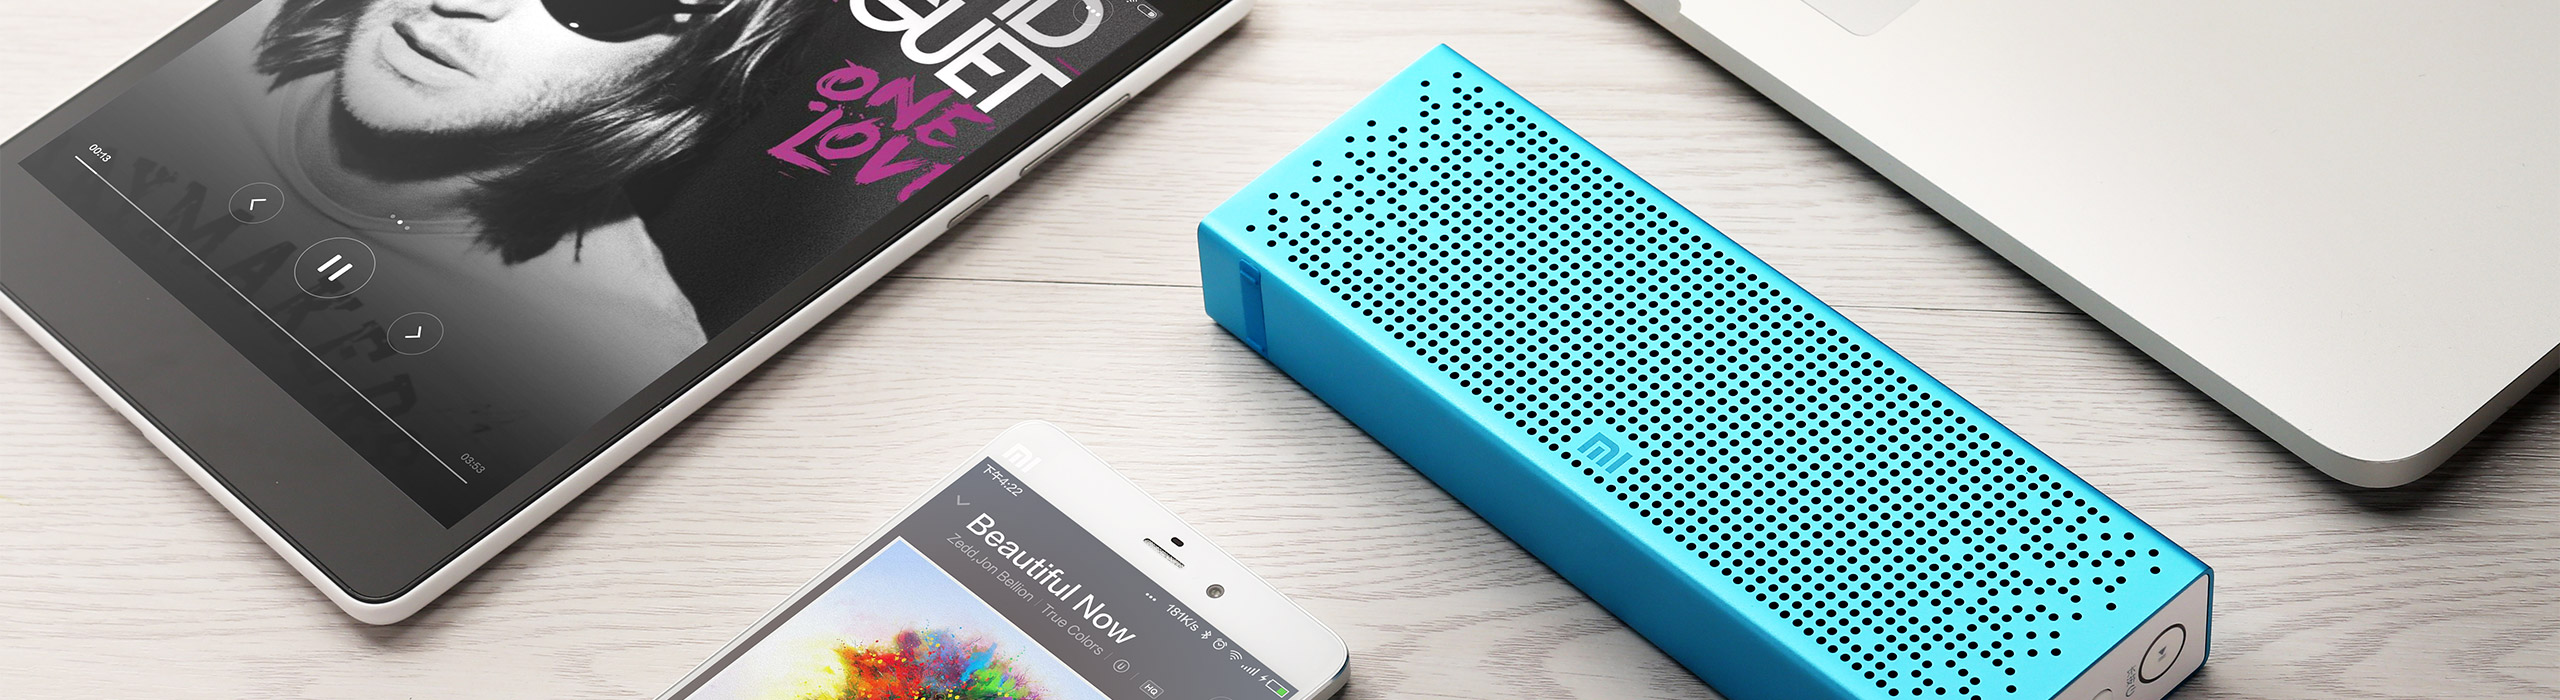 Портативная колонка Xiaomi Mi Square Box 2 Bluetooth Speaker